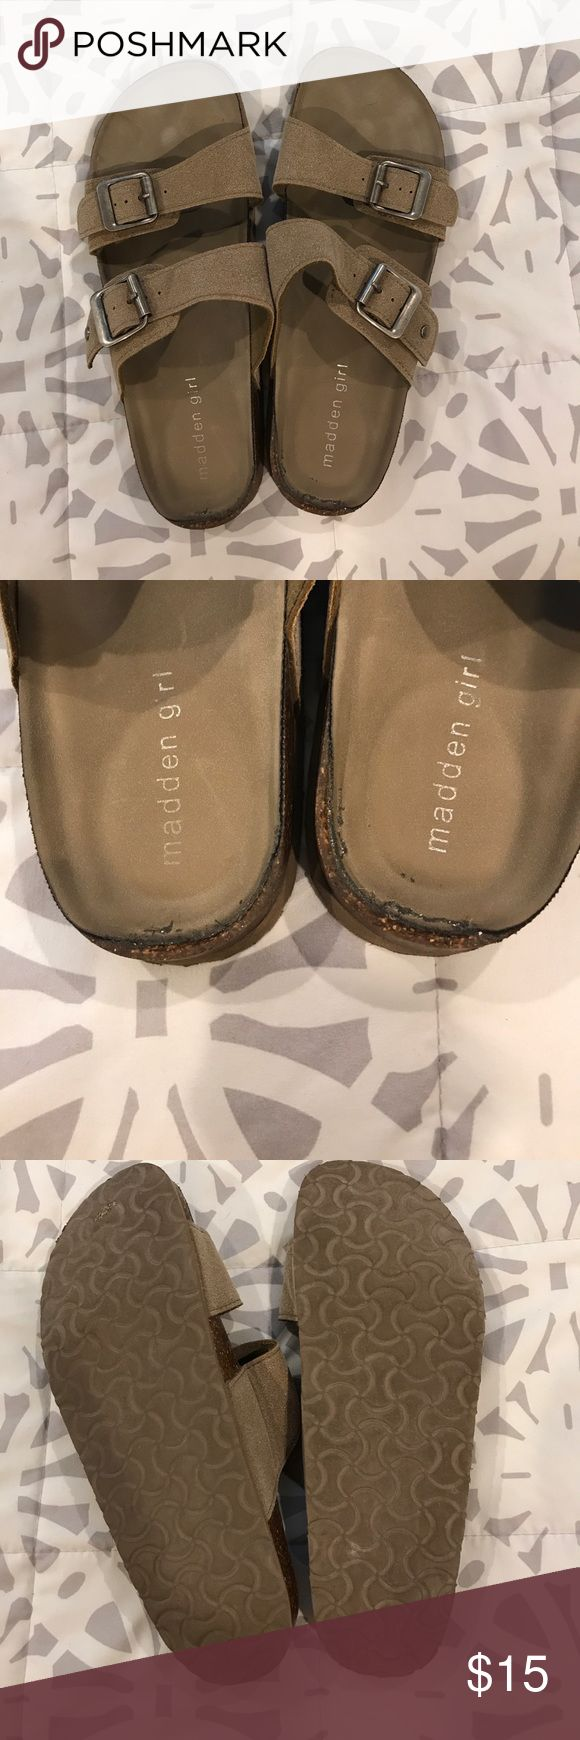 Madden Girl Birkenstock sandals Wore 5 times. Slightly too small in the back. Great beach shoe! Madden Girl Shoes Sandals